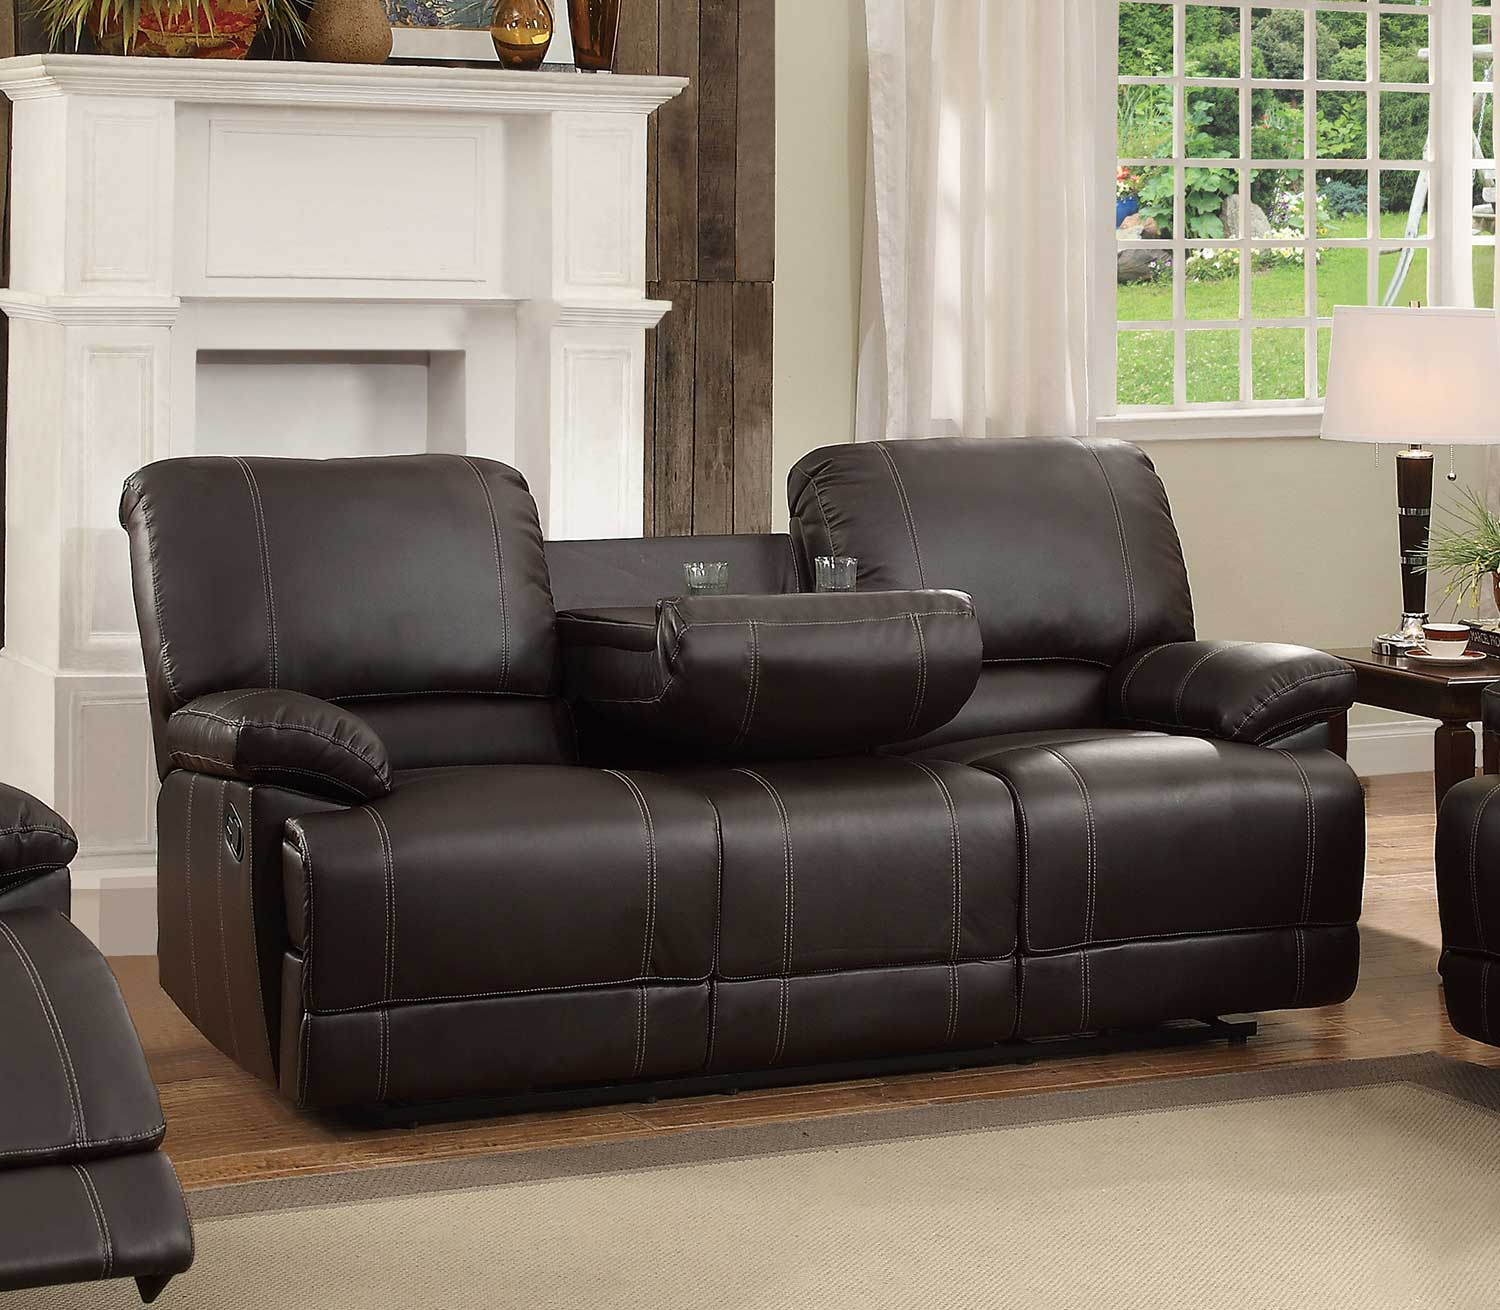 double recliner chairs with cup holders wedding chair cover hire brighton homelegance cassville reclining sofa center